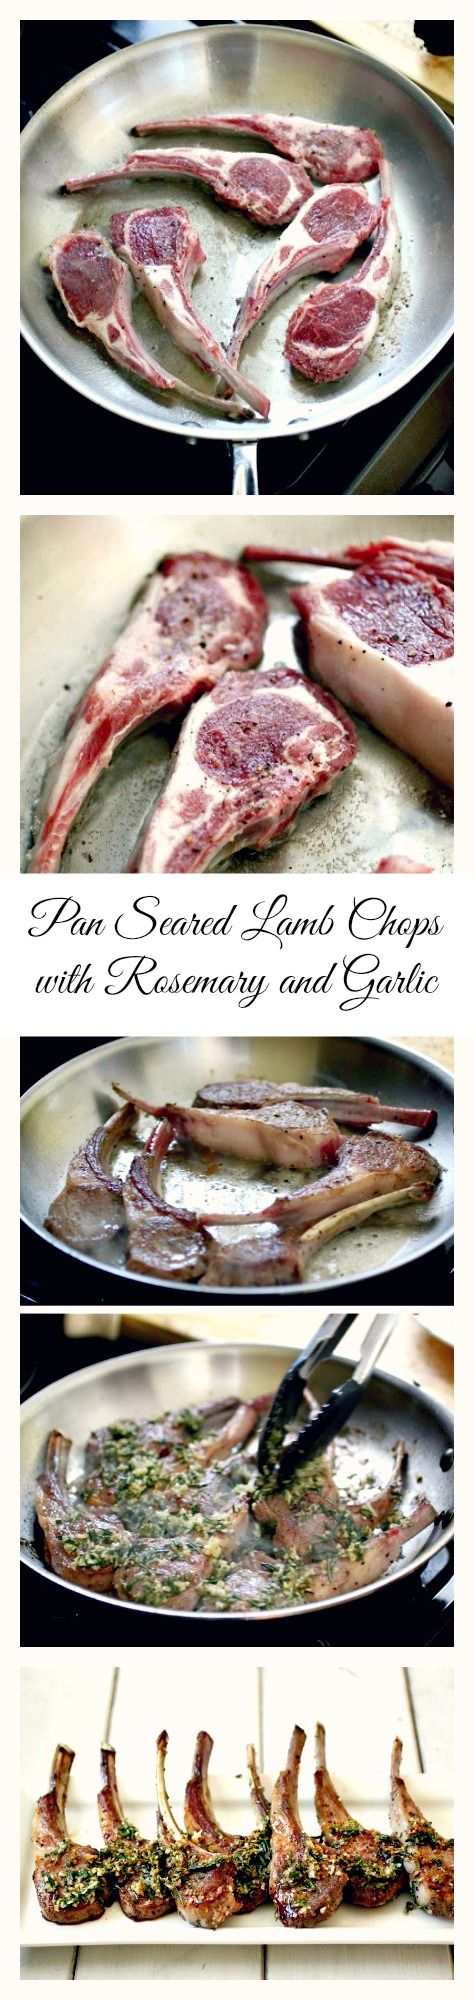 #Paleo #LambChops -  Watch the video to see how to make quick and easy Lamb Chops!